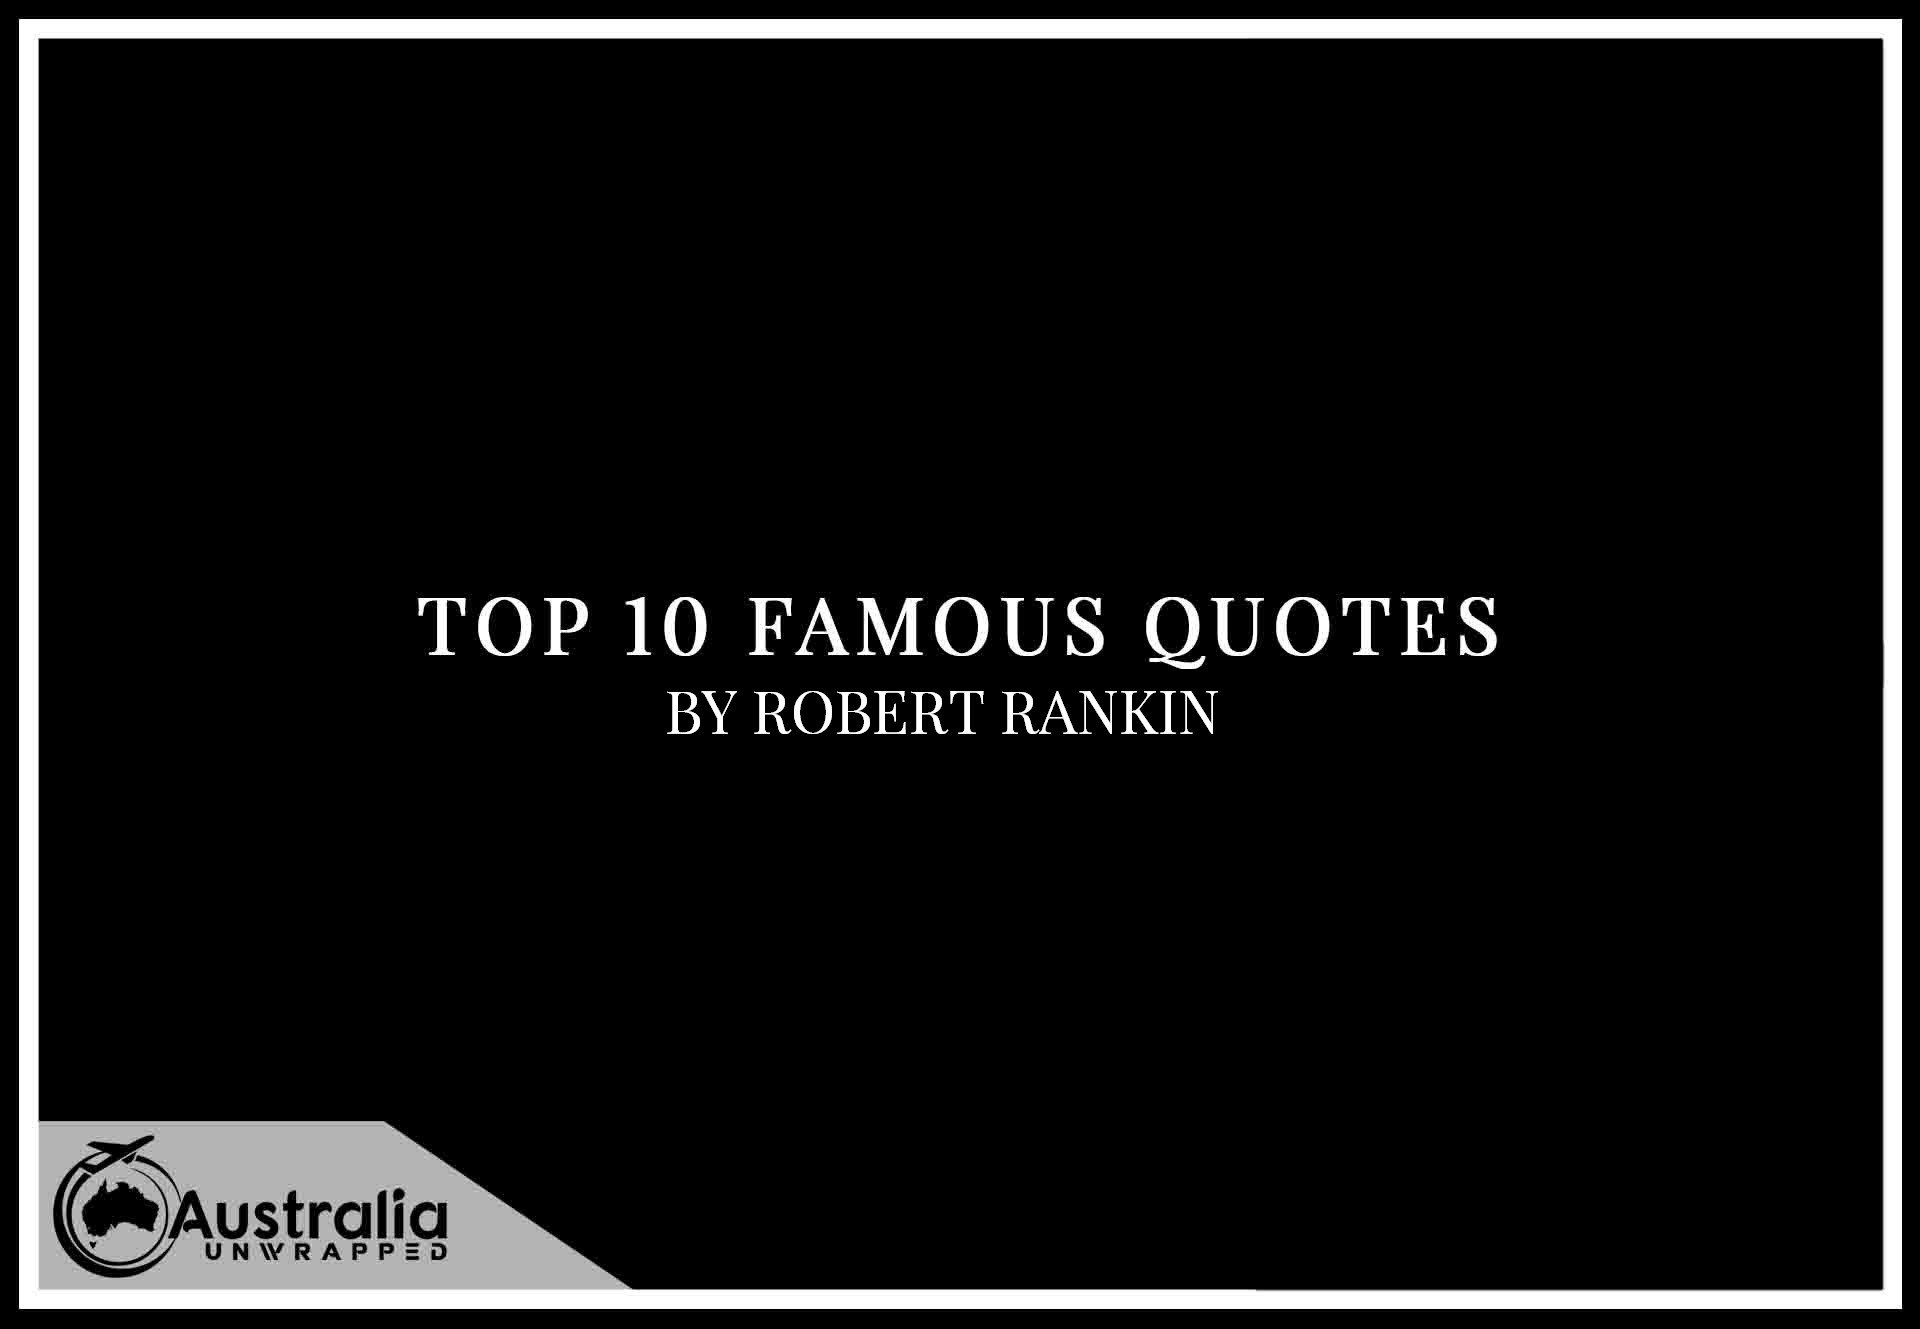 Top 10 Famous Quotes by Author Robert Rankin